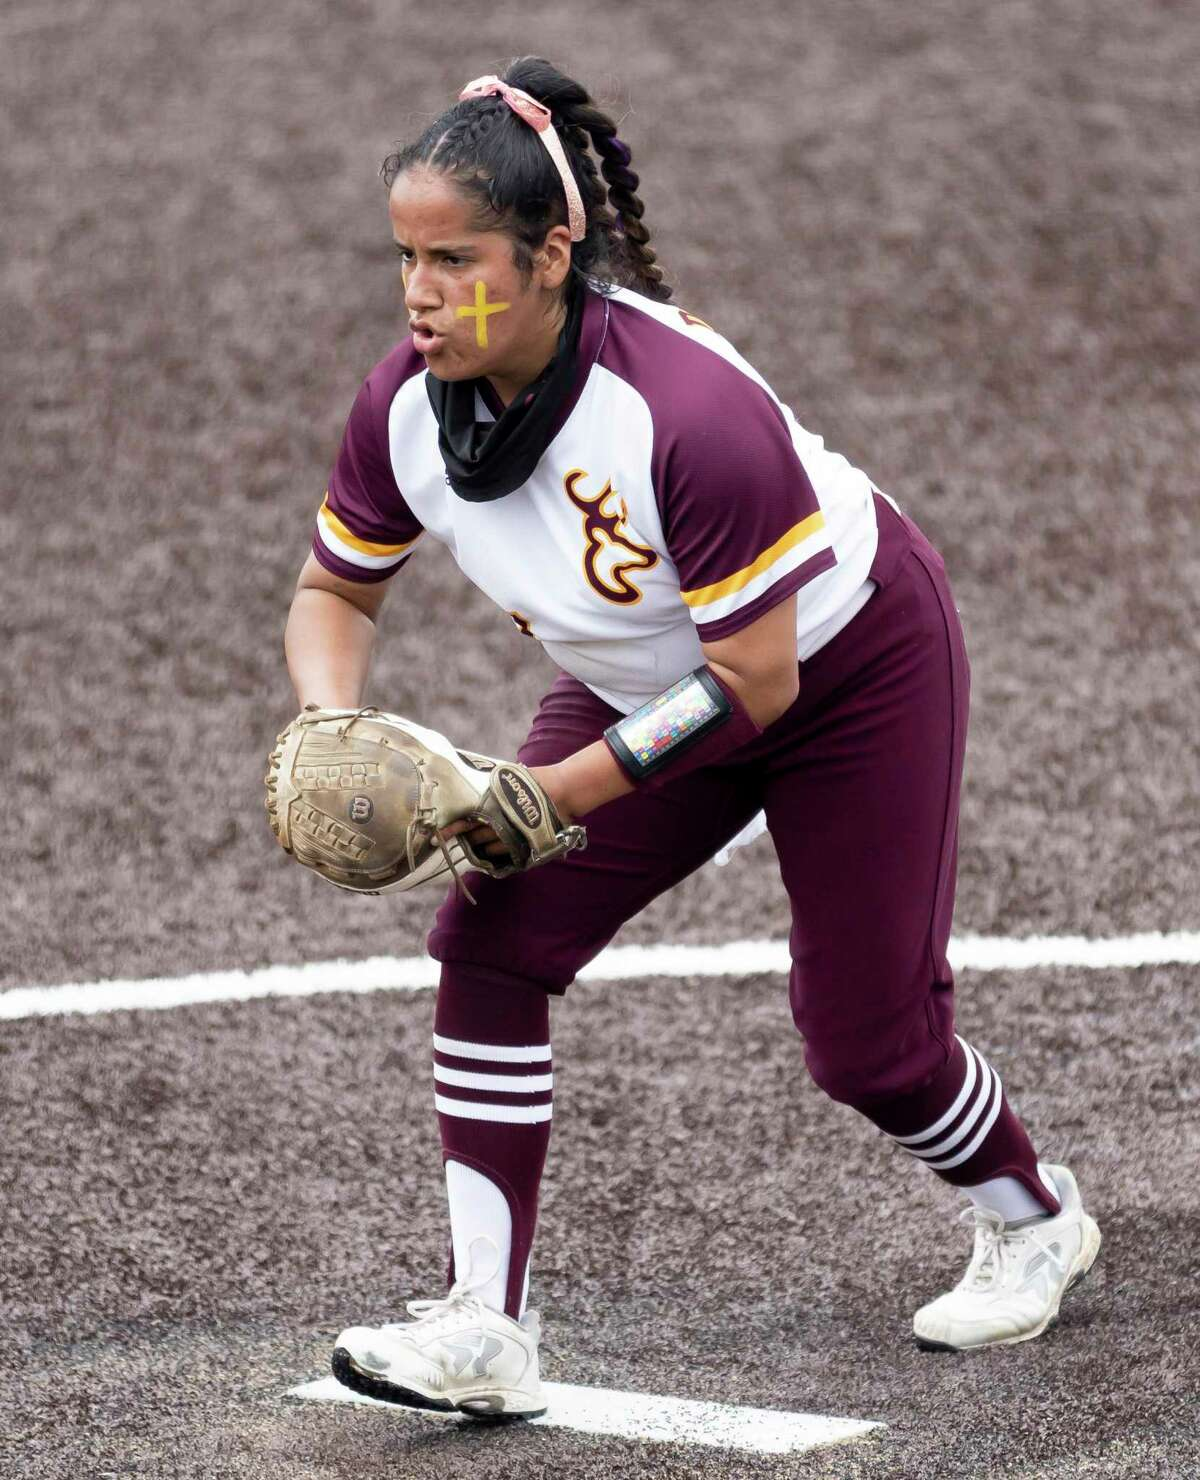 Deer Park pitcher Hannah Benavides took a perfect game into the seventh inning in shutting down Clear Springs Friday night. Her Lady Deer teammates provided the offense in a 9-1 victory.